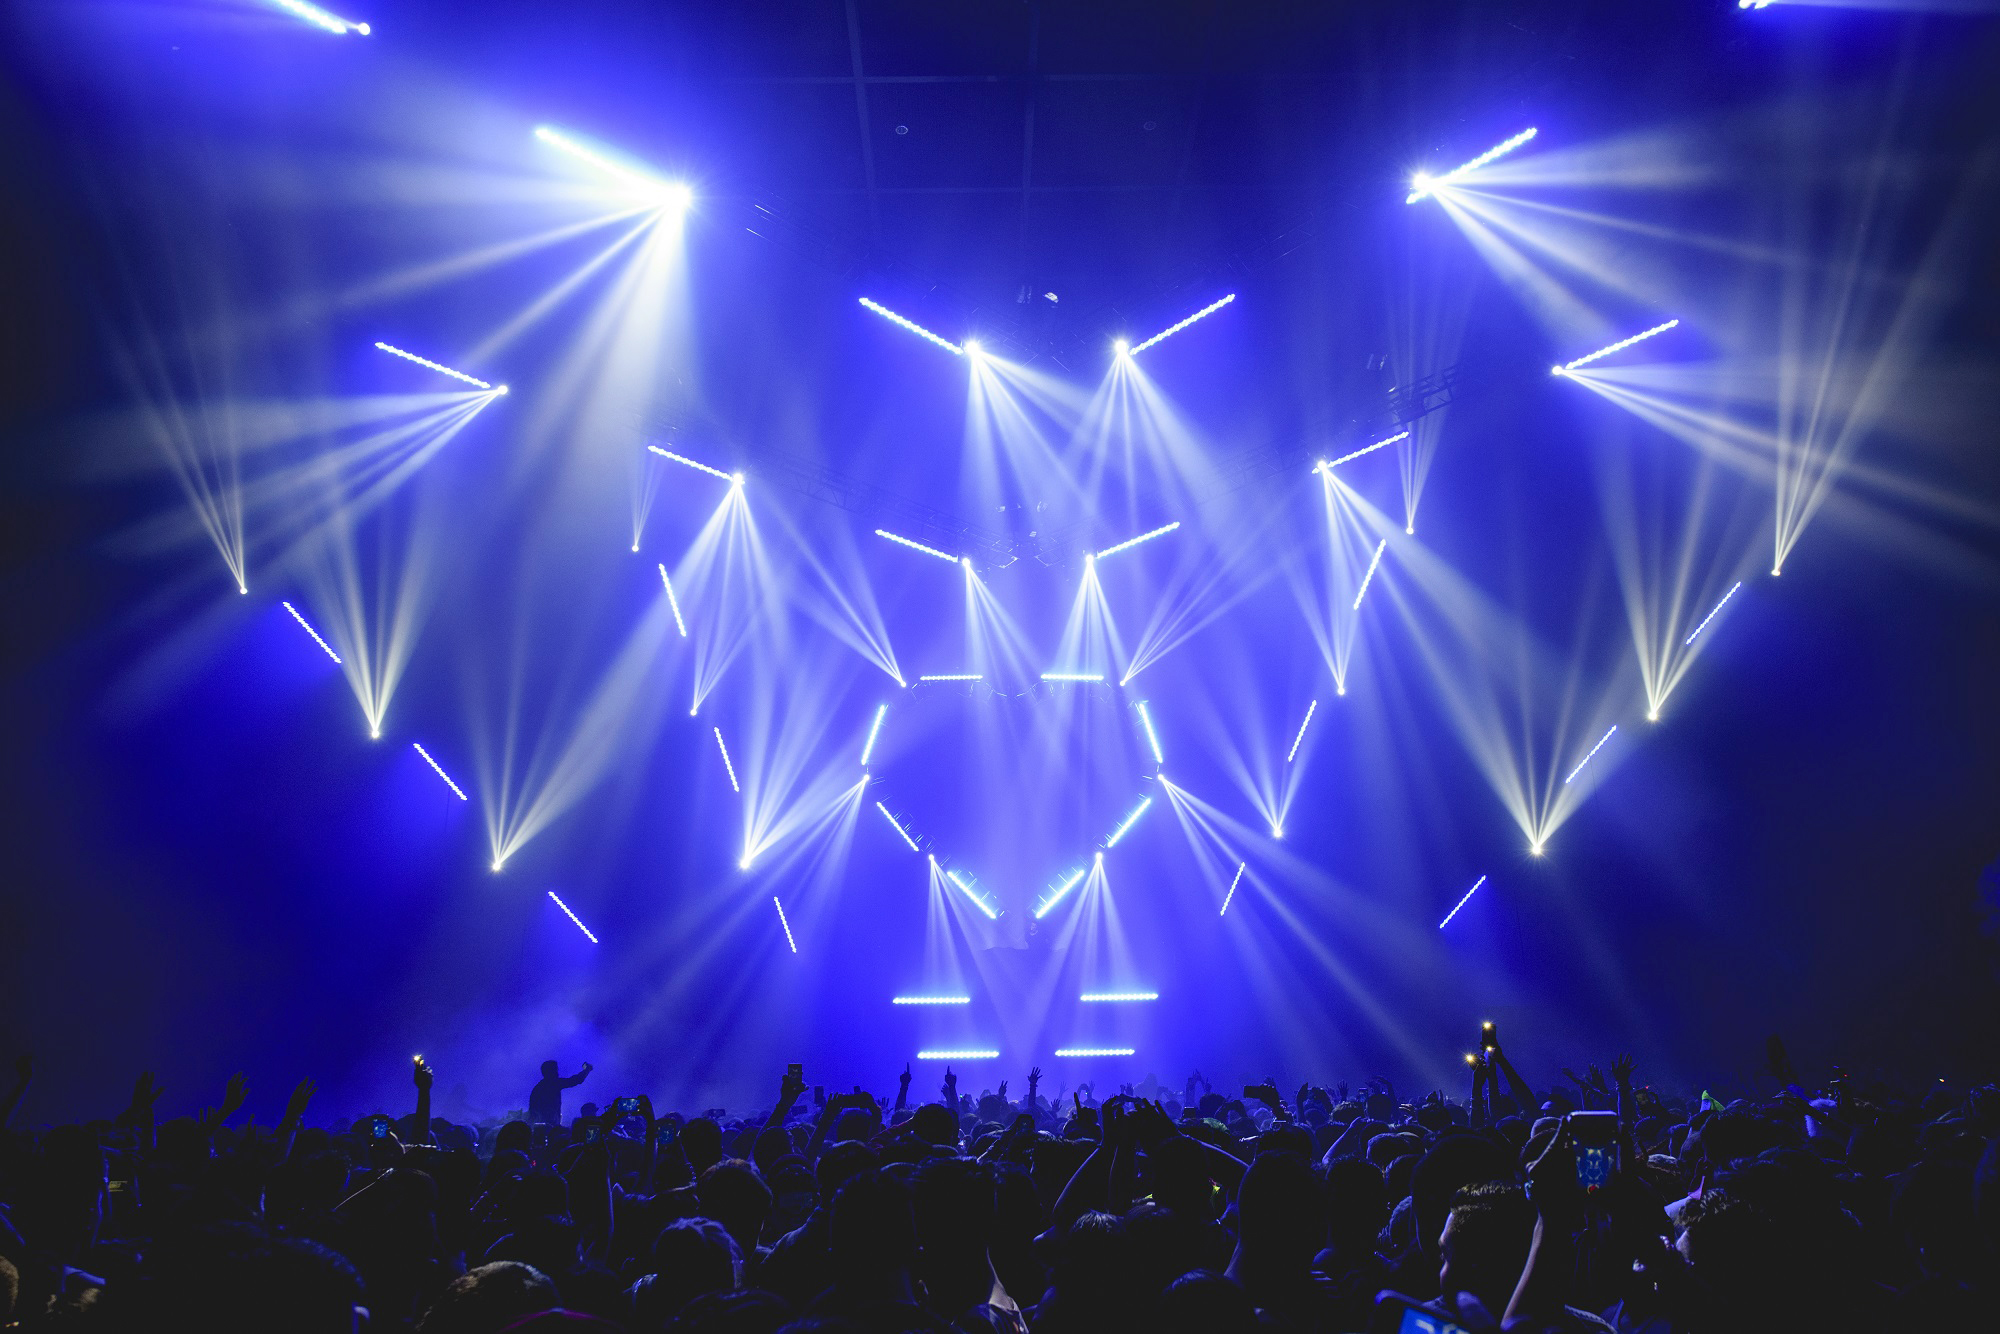 sj lighting goes elation for spectacular crush concert designs